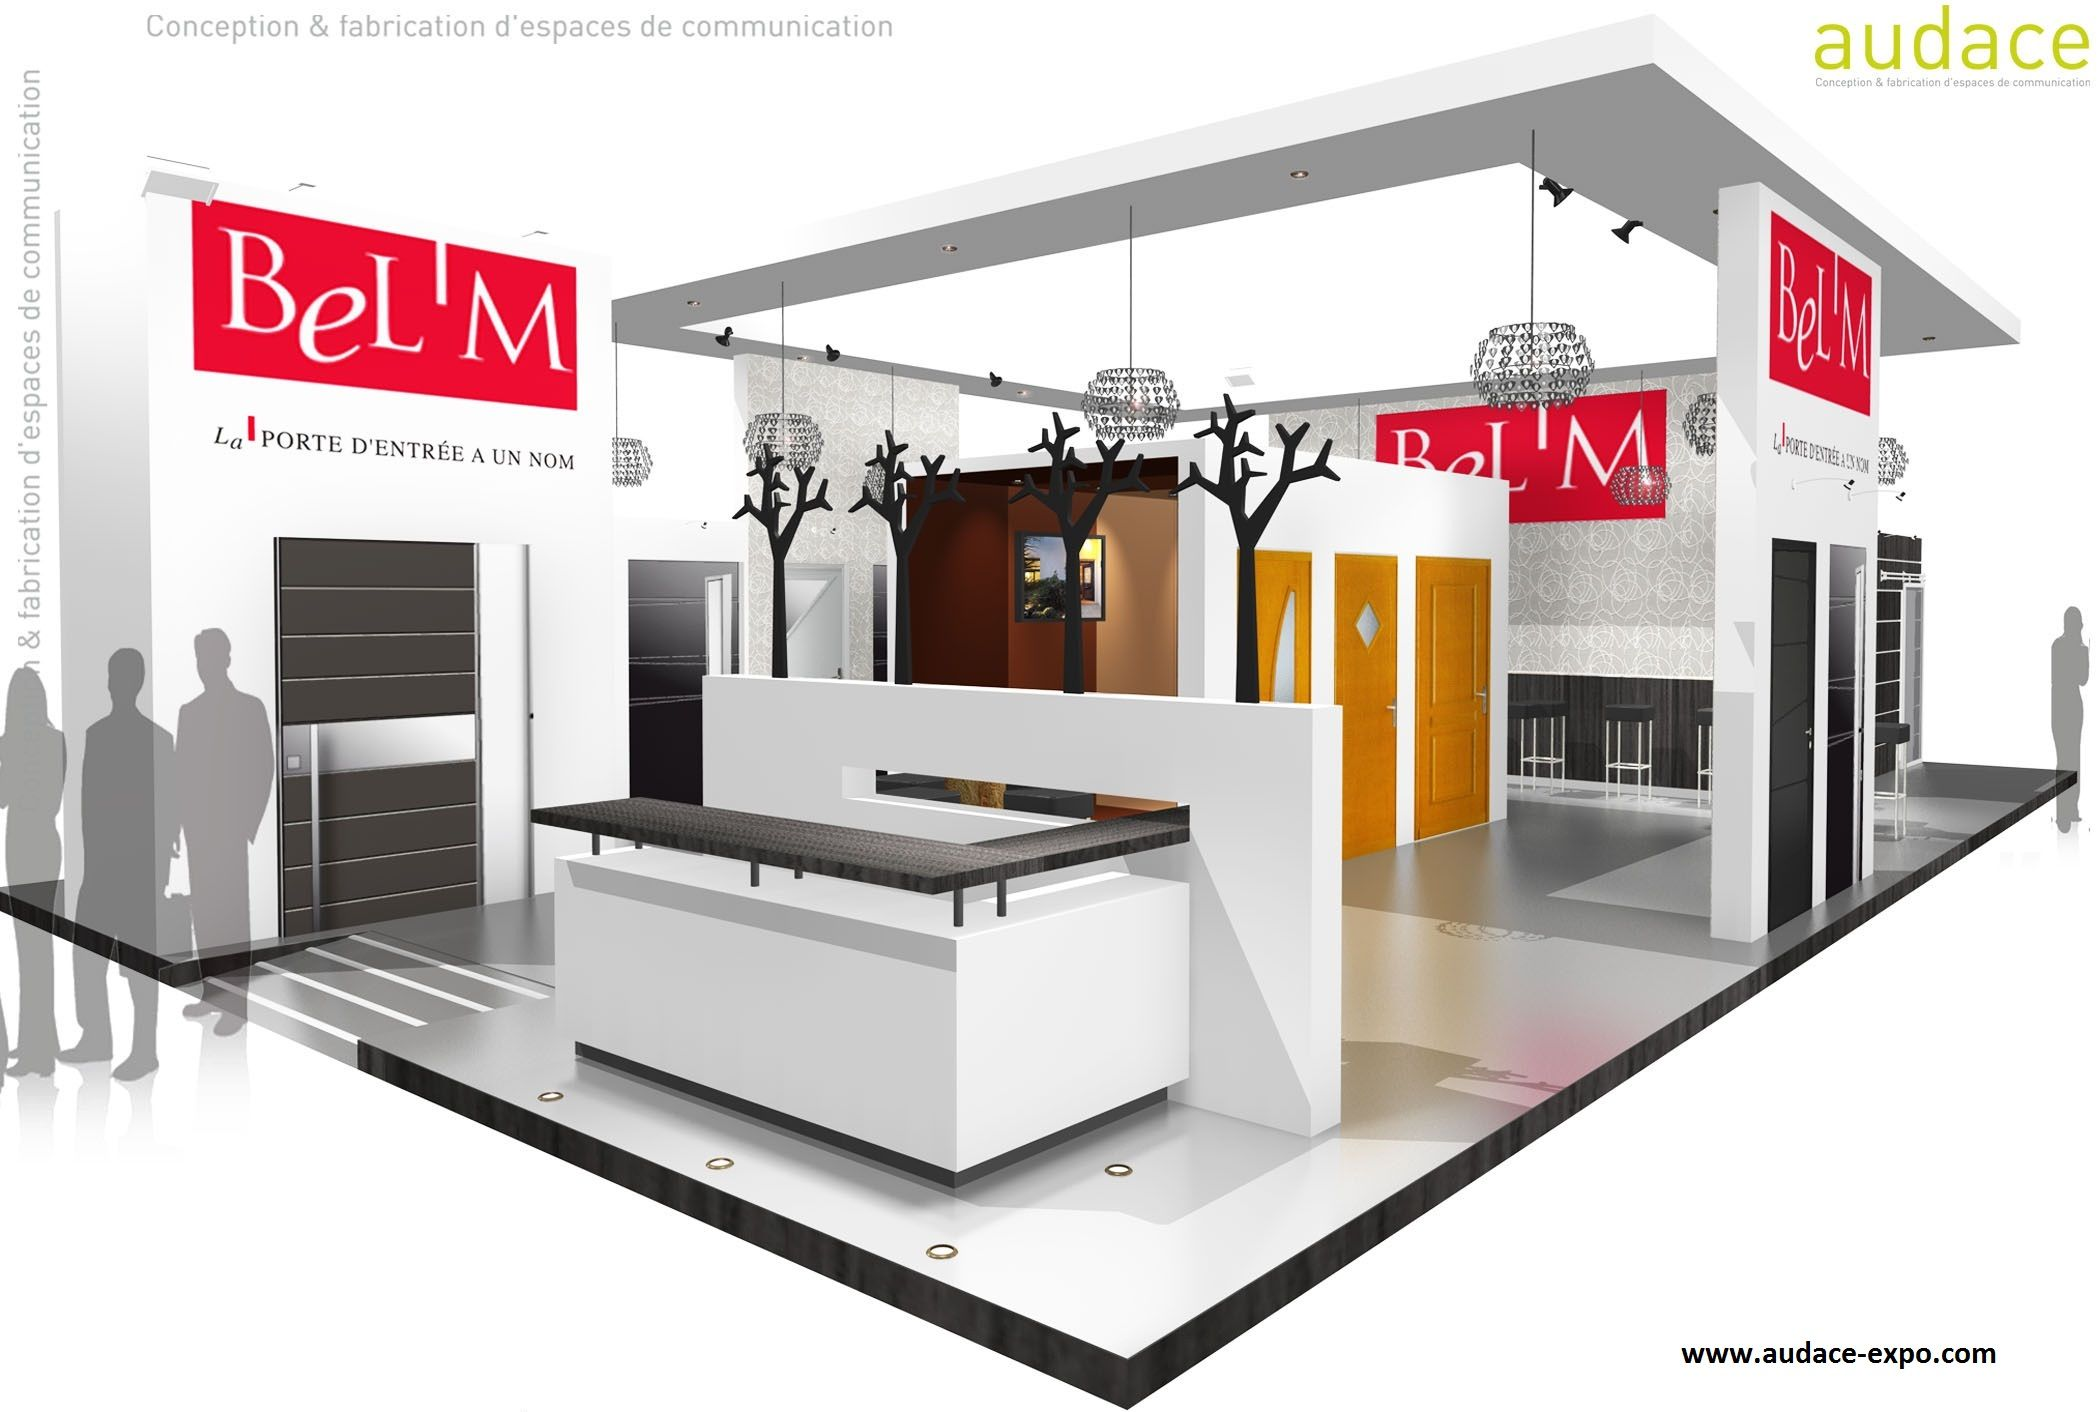 Stand audace expo nantes stand showroom stand pliable stand modulable stand traditionnel for Stand pliable